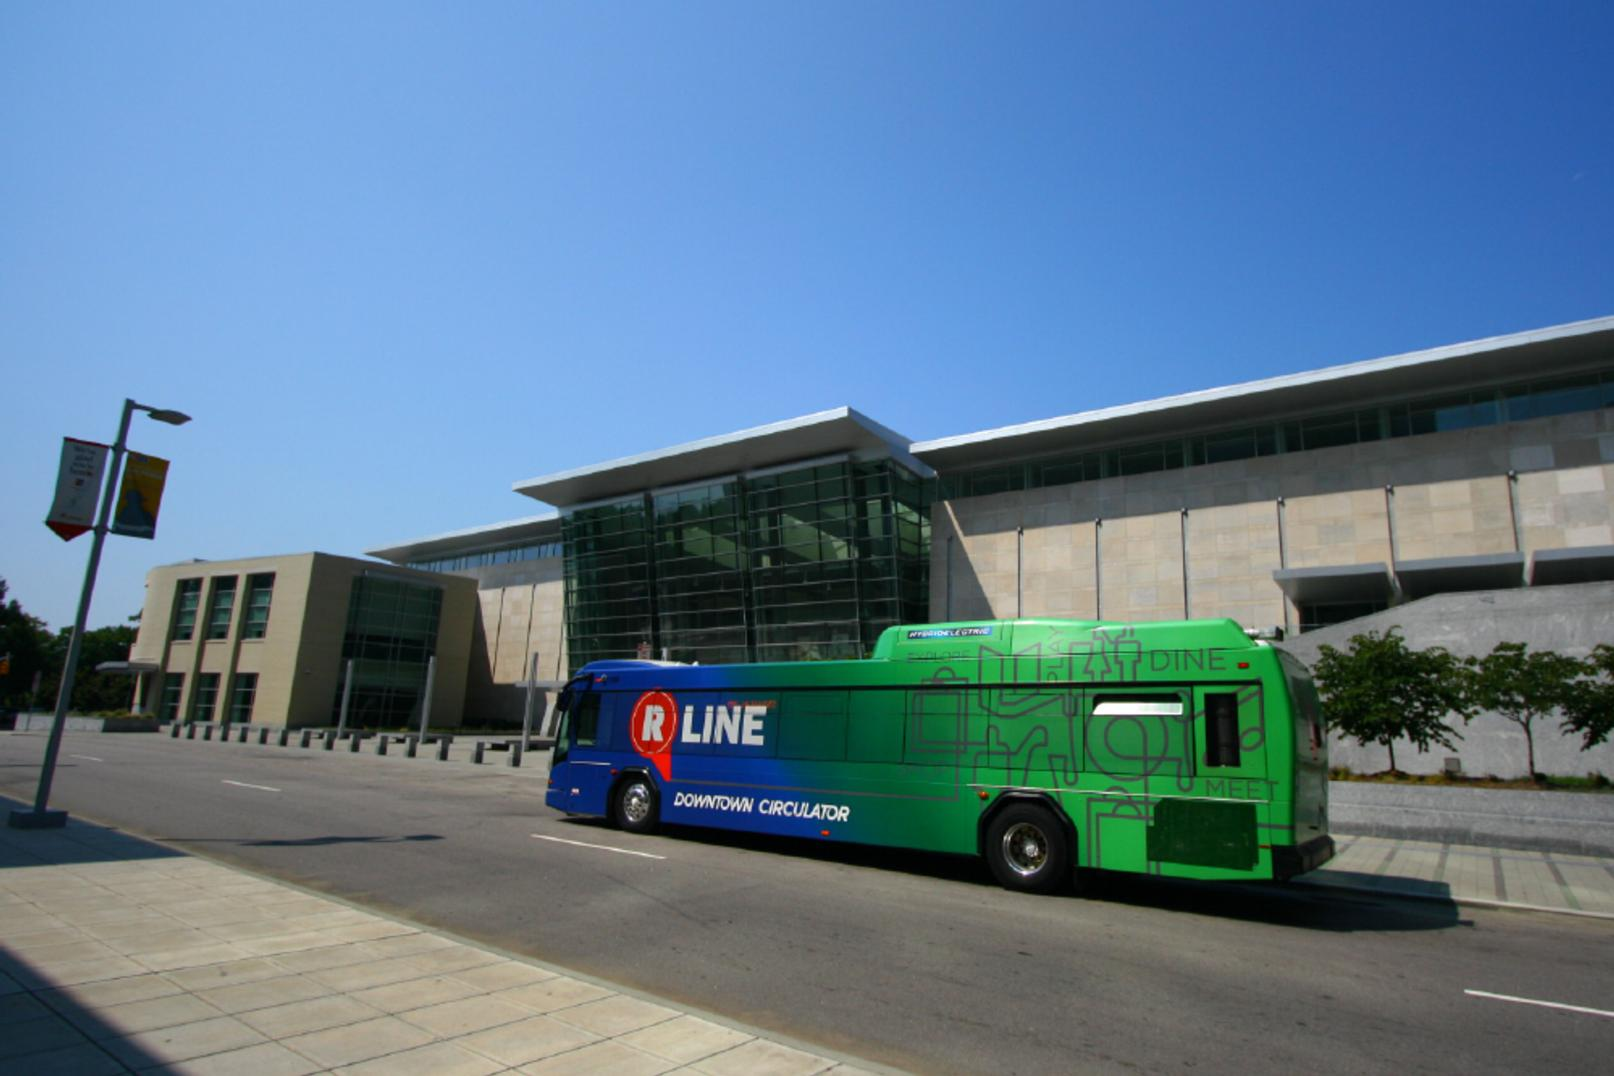 R-LINE Downtown Circulator